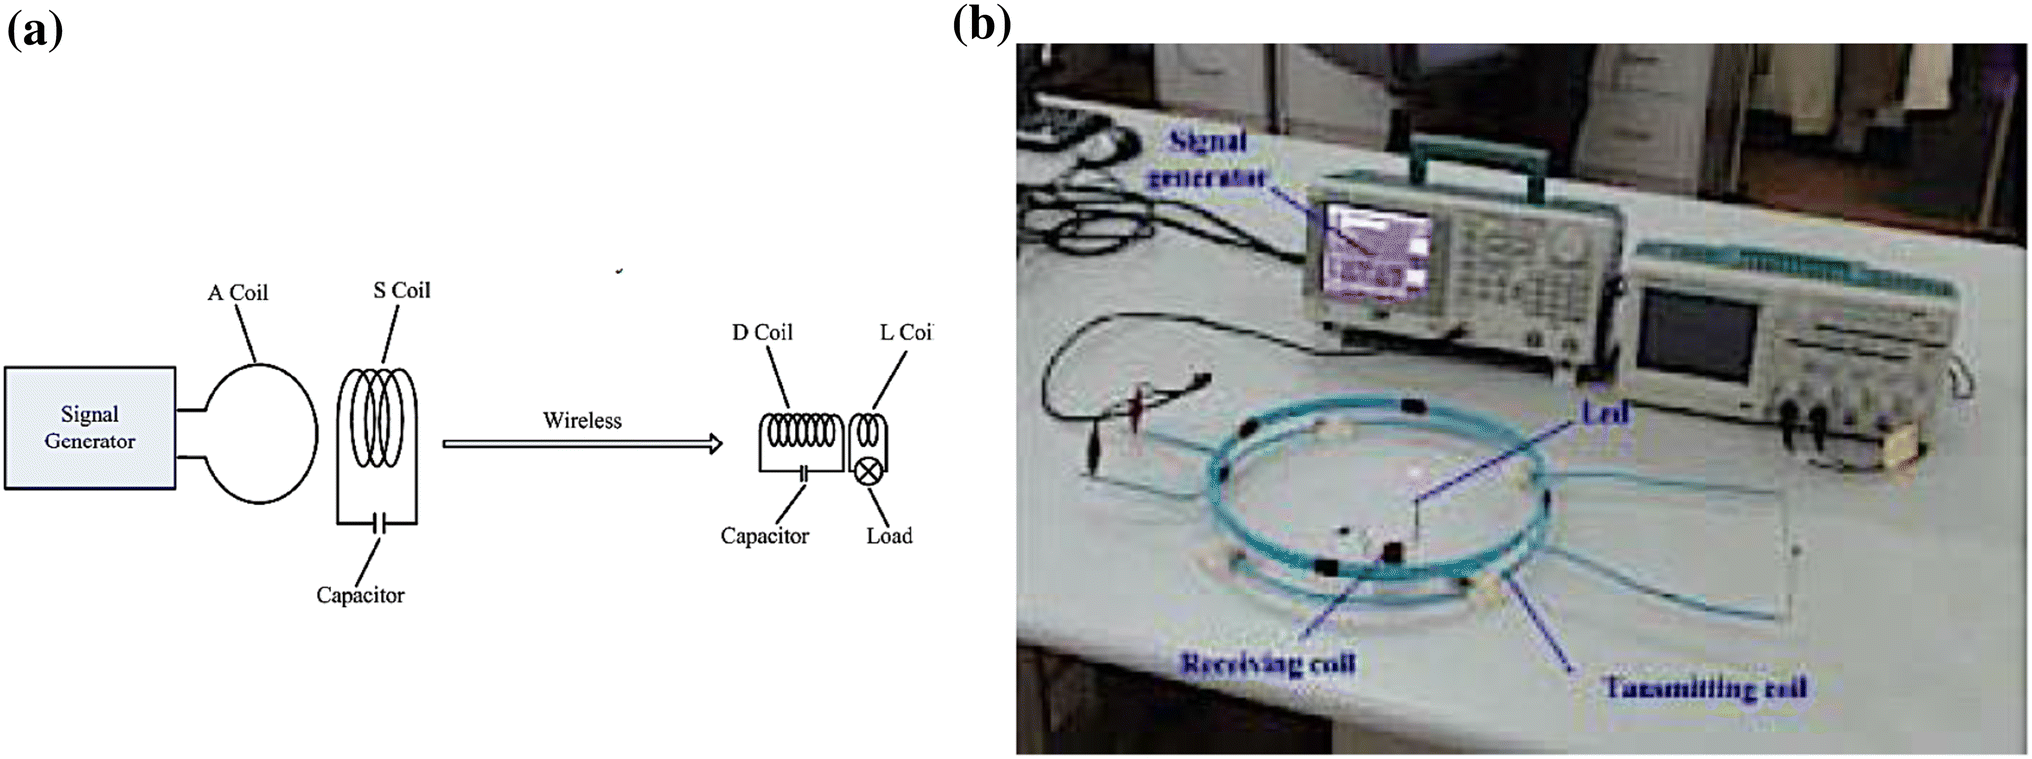 Applications of Wireless Power Transfer in Medicine: State